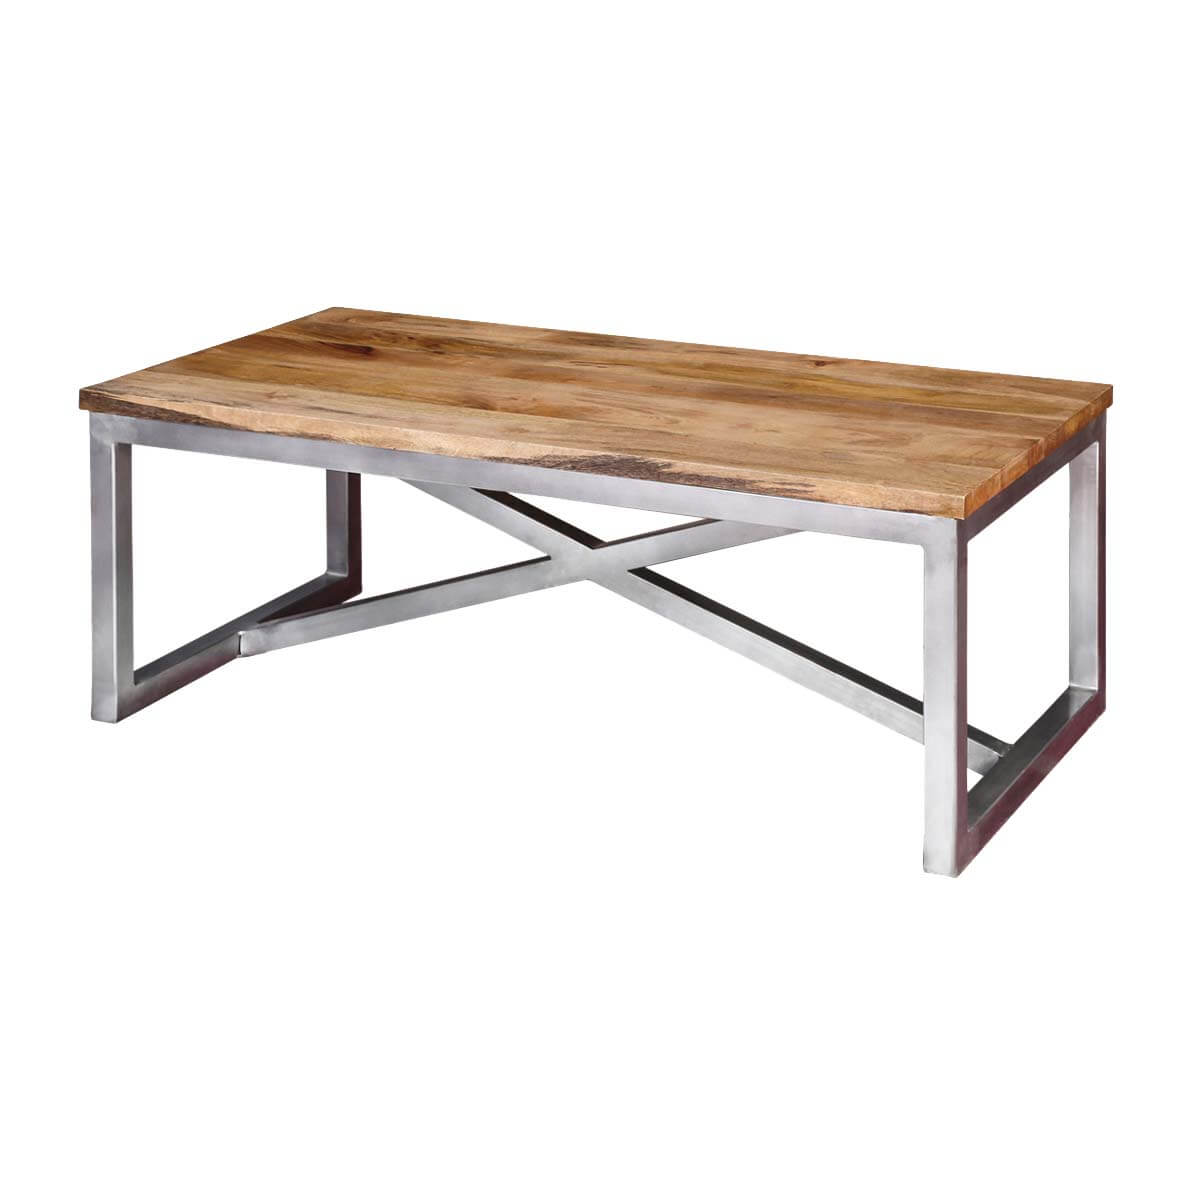 Lisbon Mango Wood Industrial Accent Coffee Table With Iron Legs